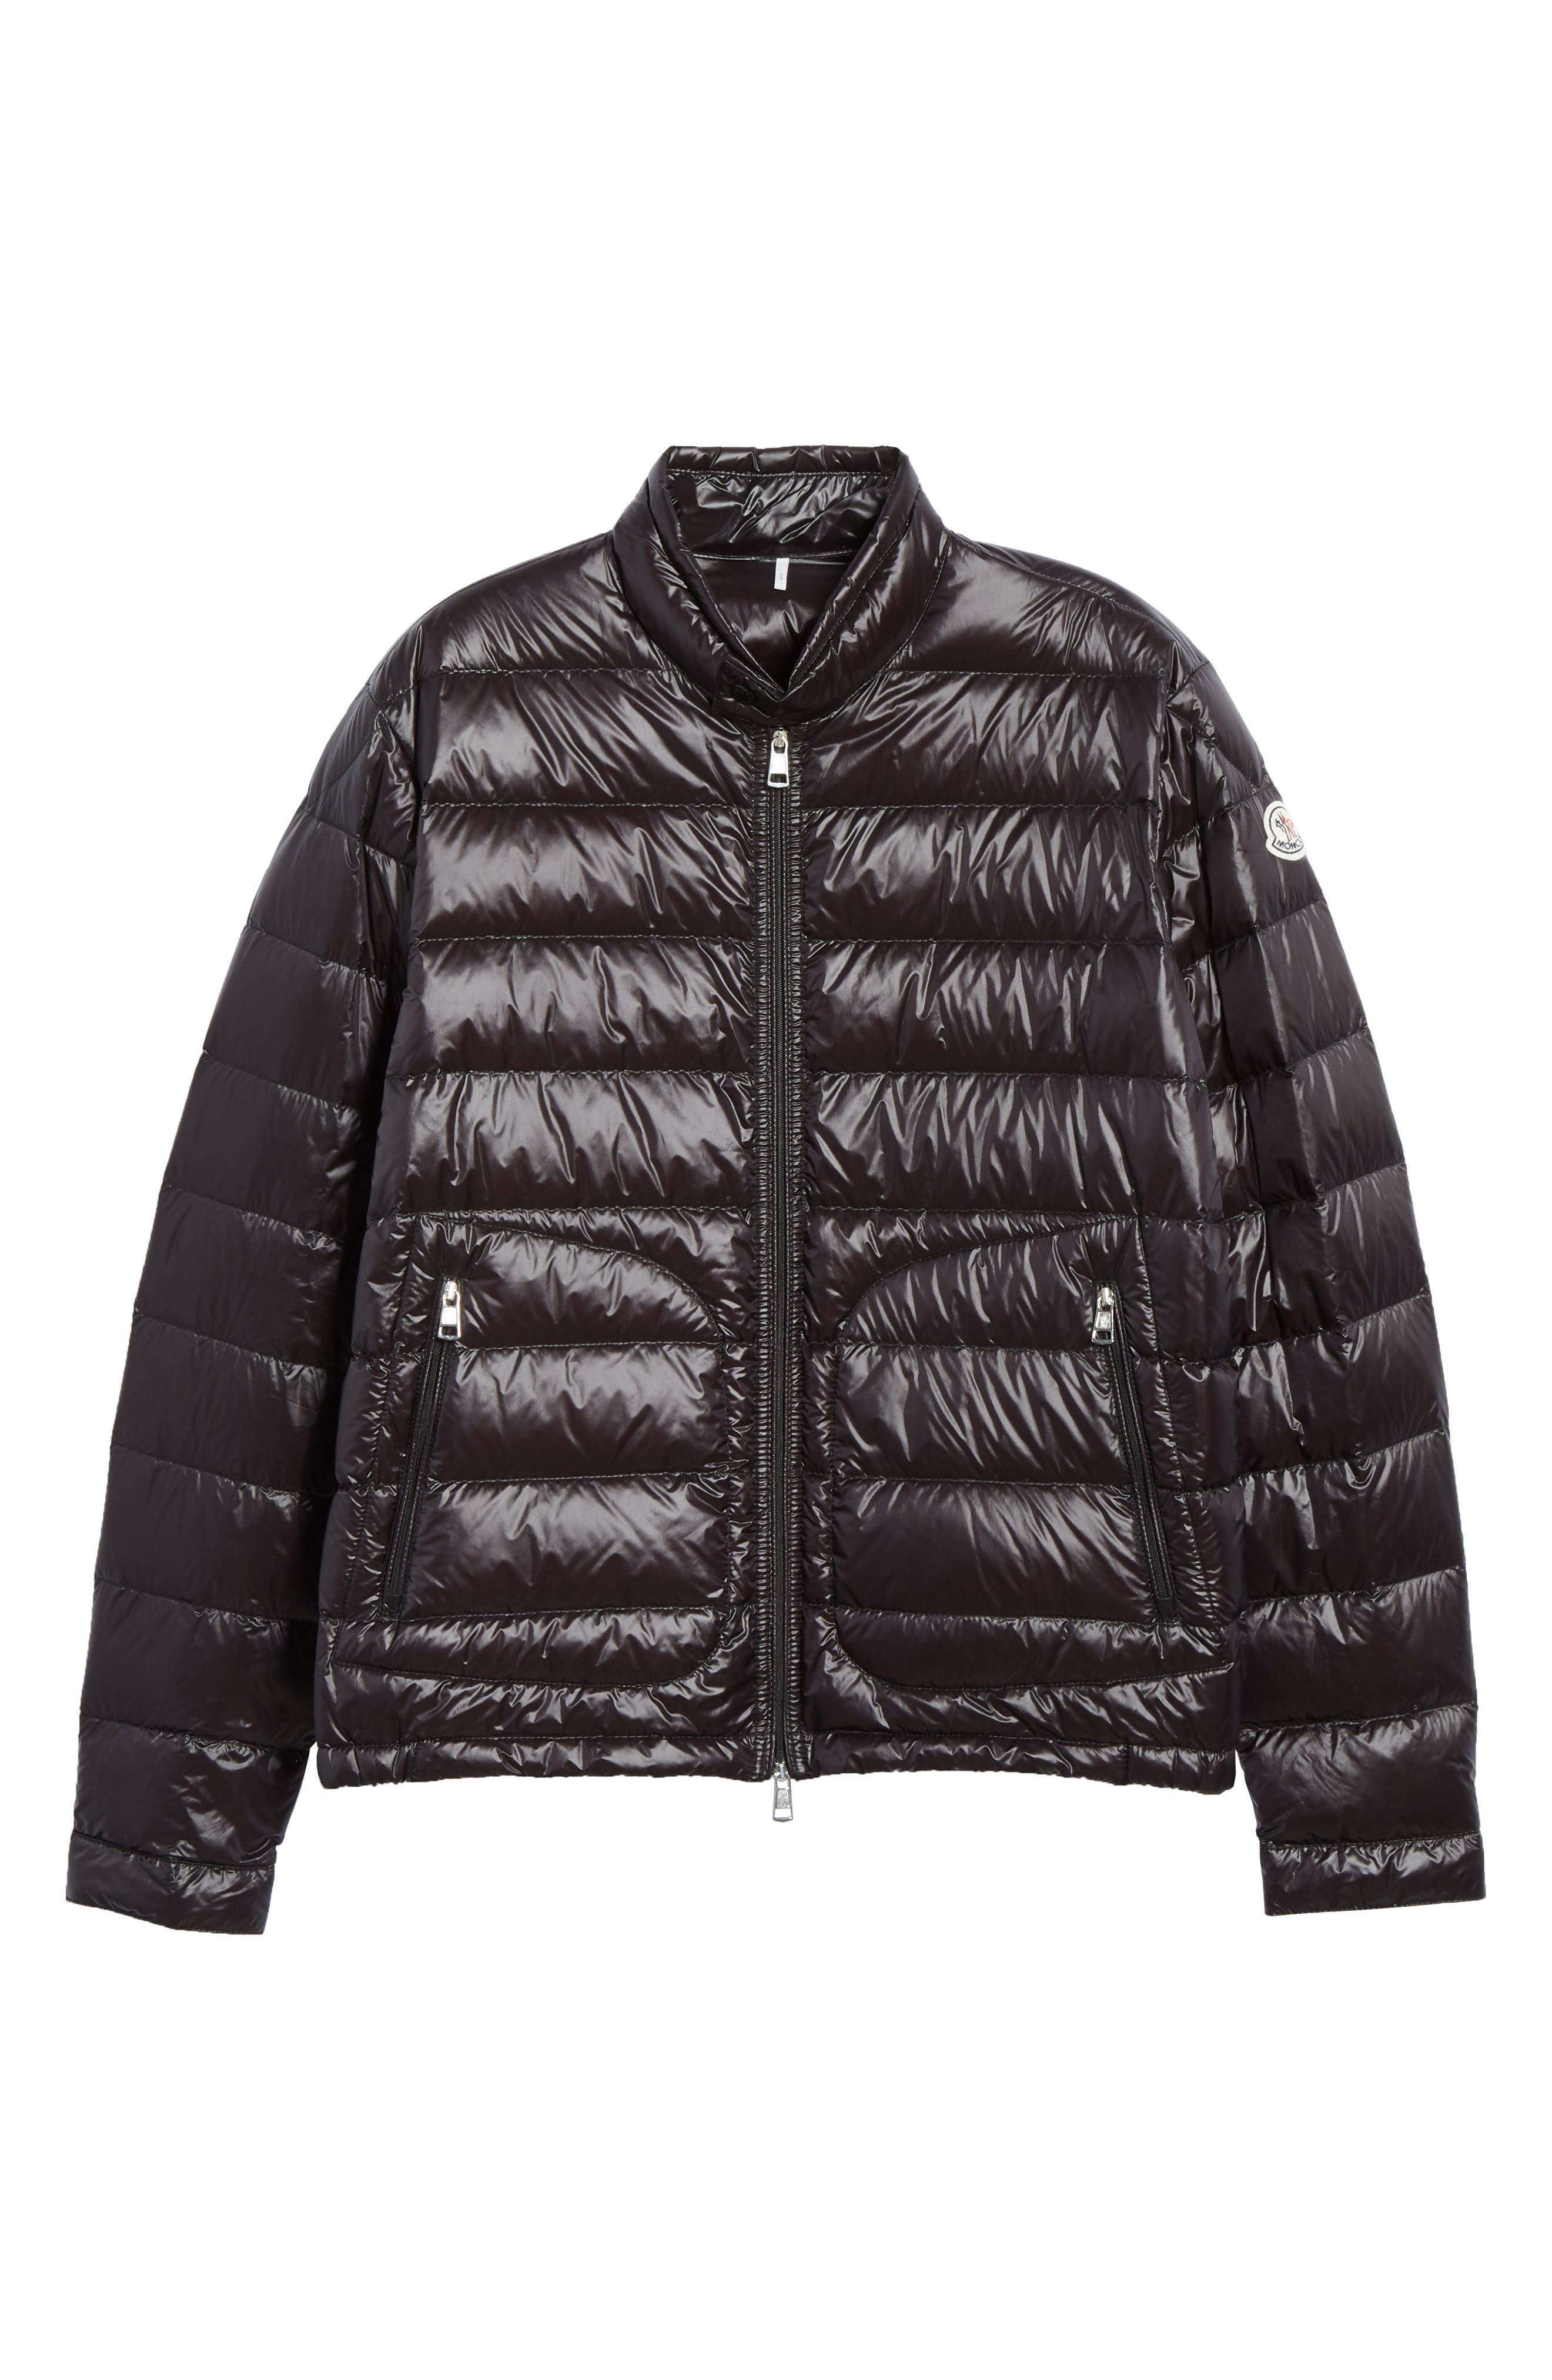 MONCLER, Acorus Down Jacket, Alternate thumbnail 5, color, BLACK